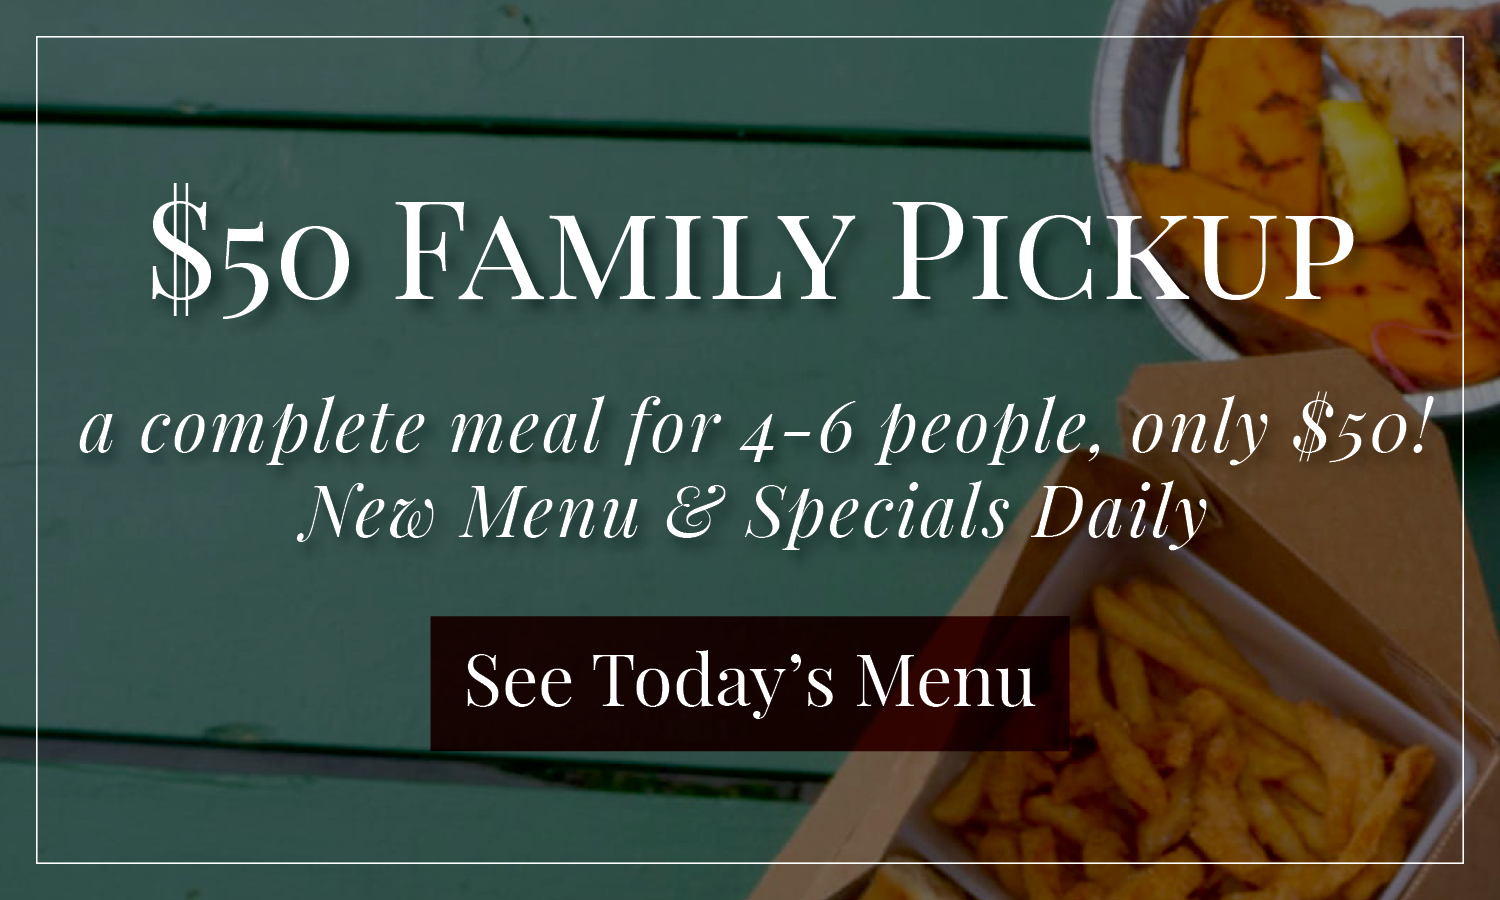 $50 Family Pickup, A complete meal for 4-6 people, only $50! New Menu & Specials Daily. See Today's Menu!